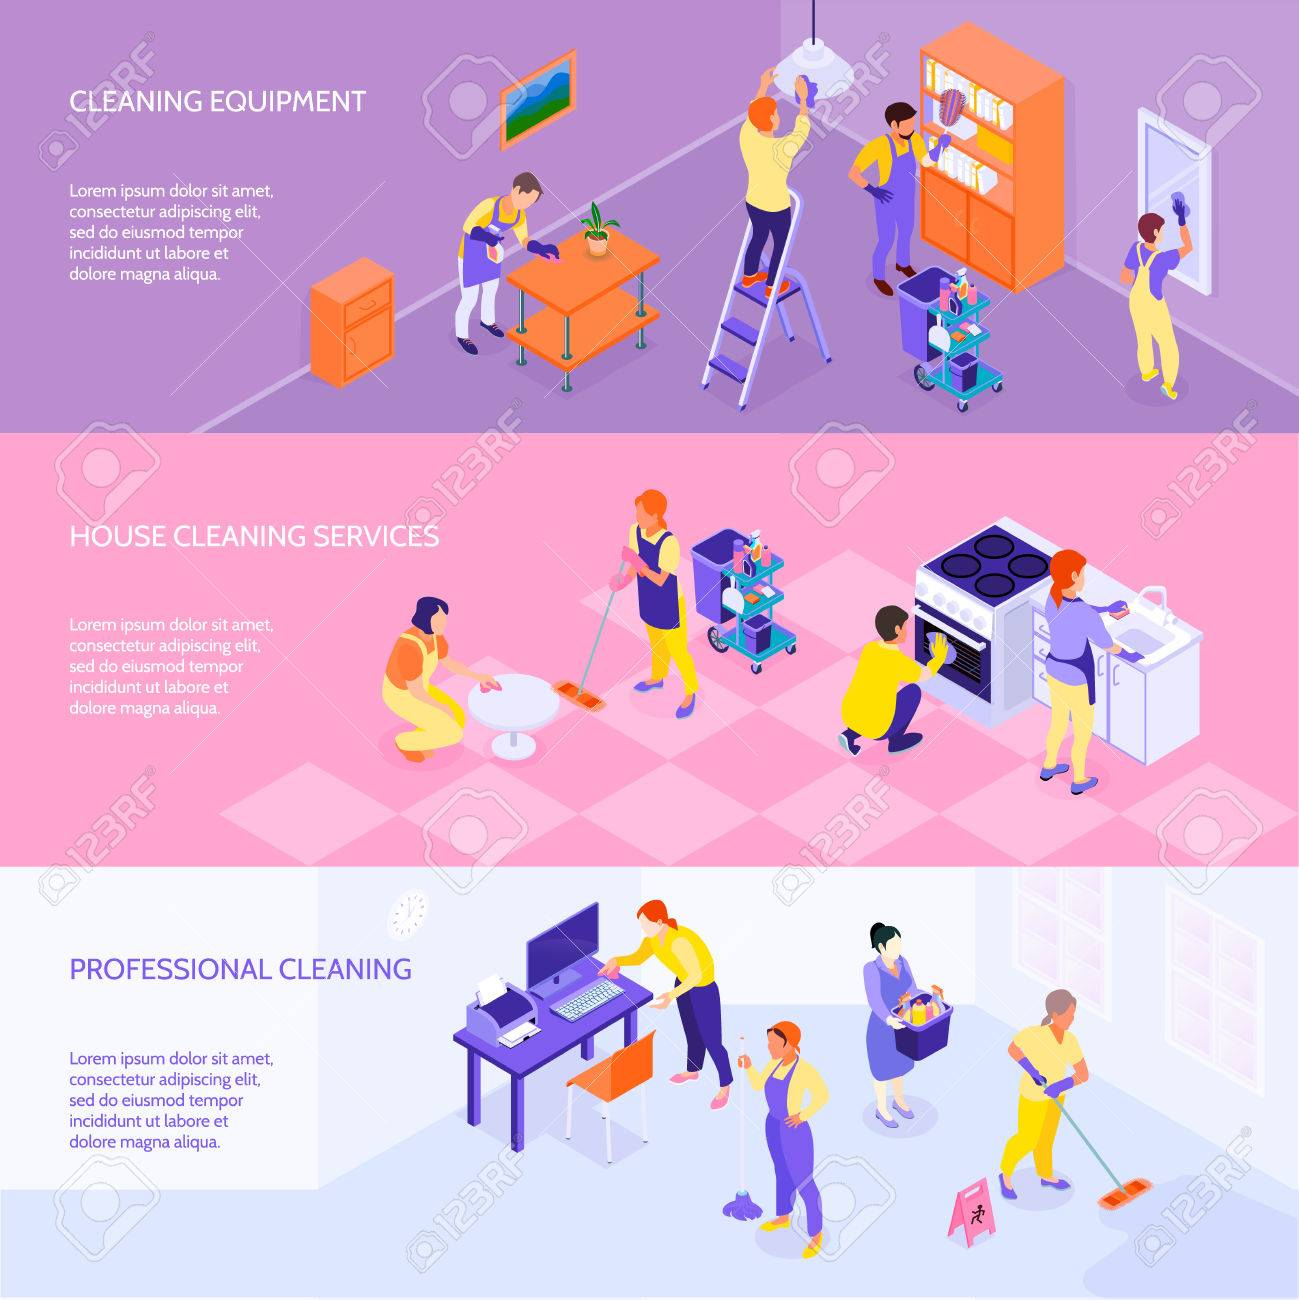 Professional cleaning company equipment services and rates 3 horizontal infographic elements isometric banners set isolated vector illustration - 86093029